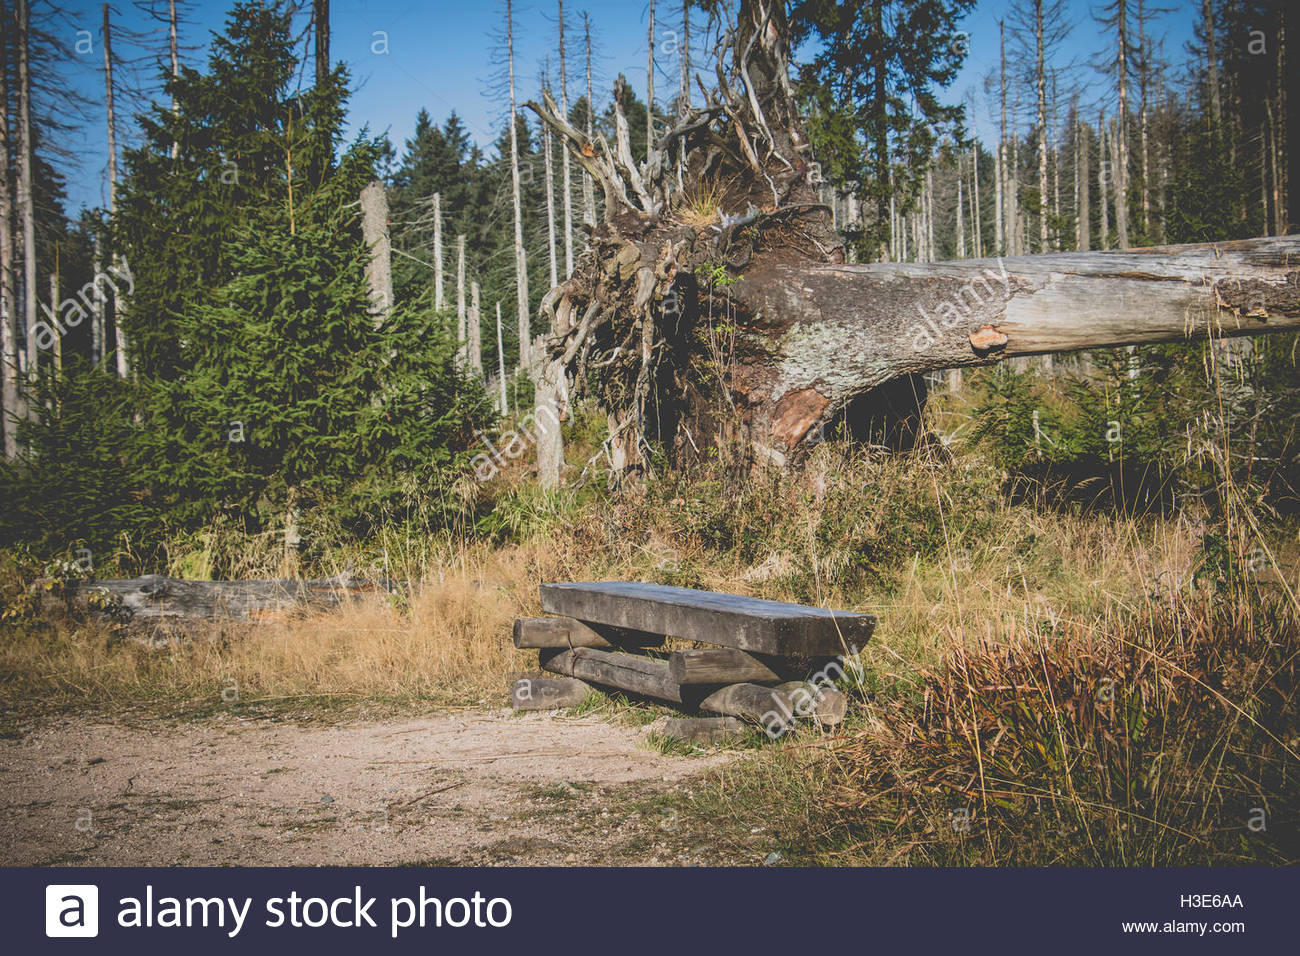 Forest in Germany, National Park Harz, wooden rustic bench at hiking trail  harz germany empty bench forest bench - Stock Image